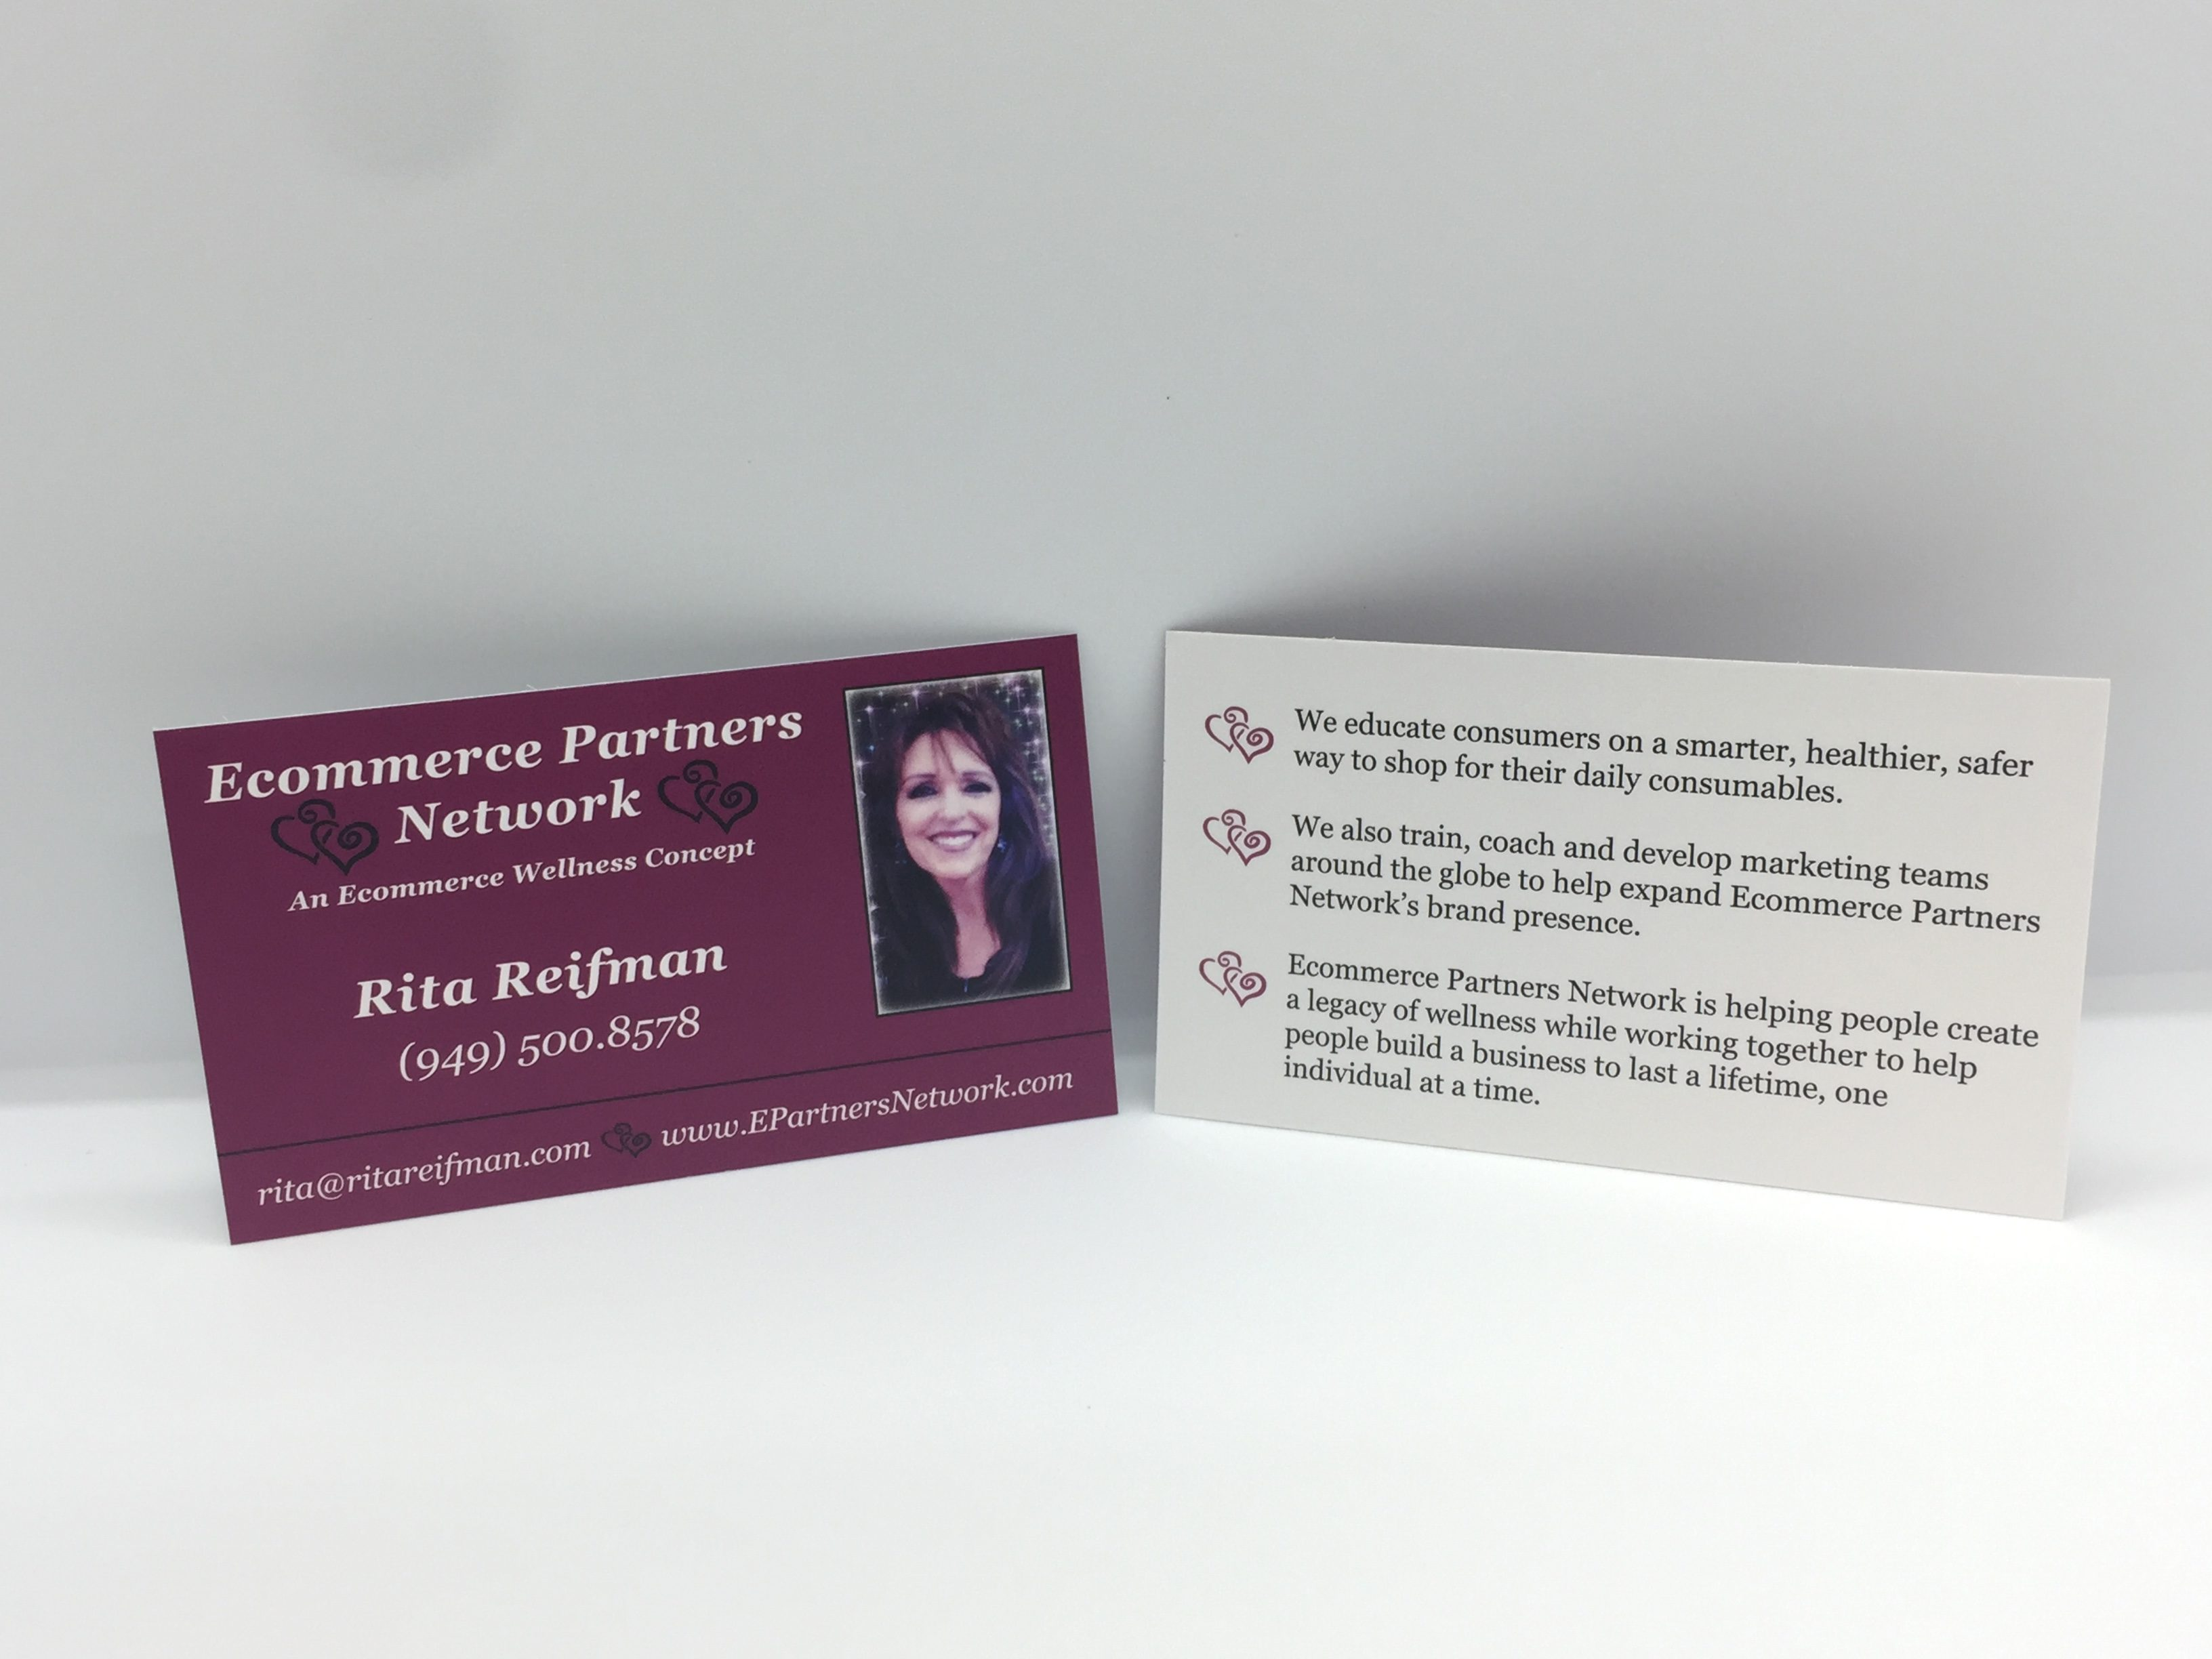 Rita Reifman Business Cards Printed at Printex Printing & Graphics